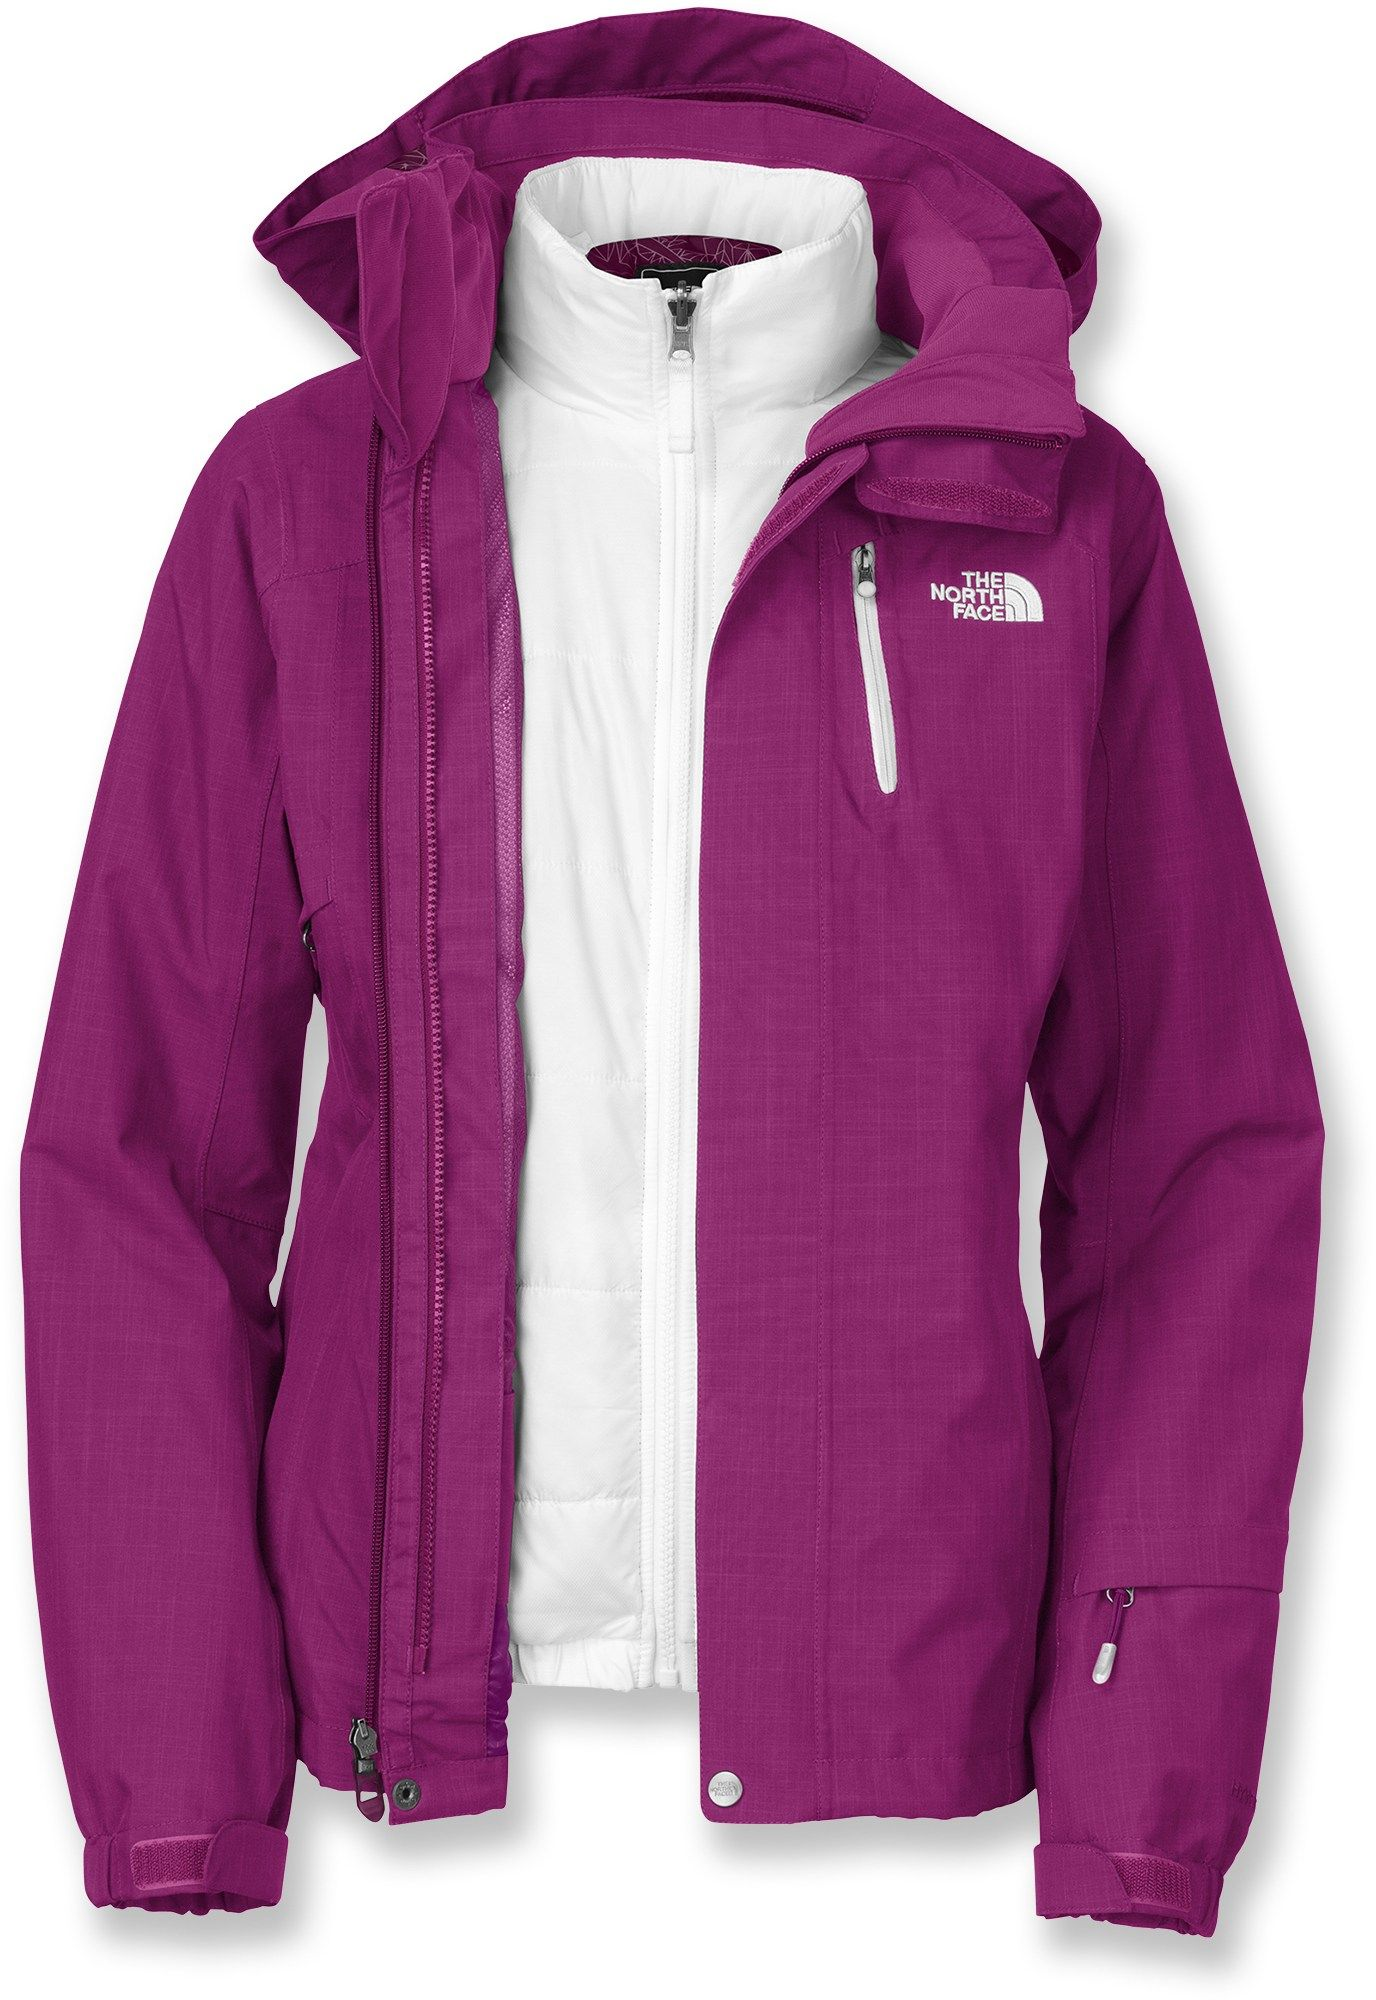 3eafdaaa0 Cheakamus Triclimate 3-in-1 Insulated Jacket - Women's | clothes ...